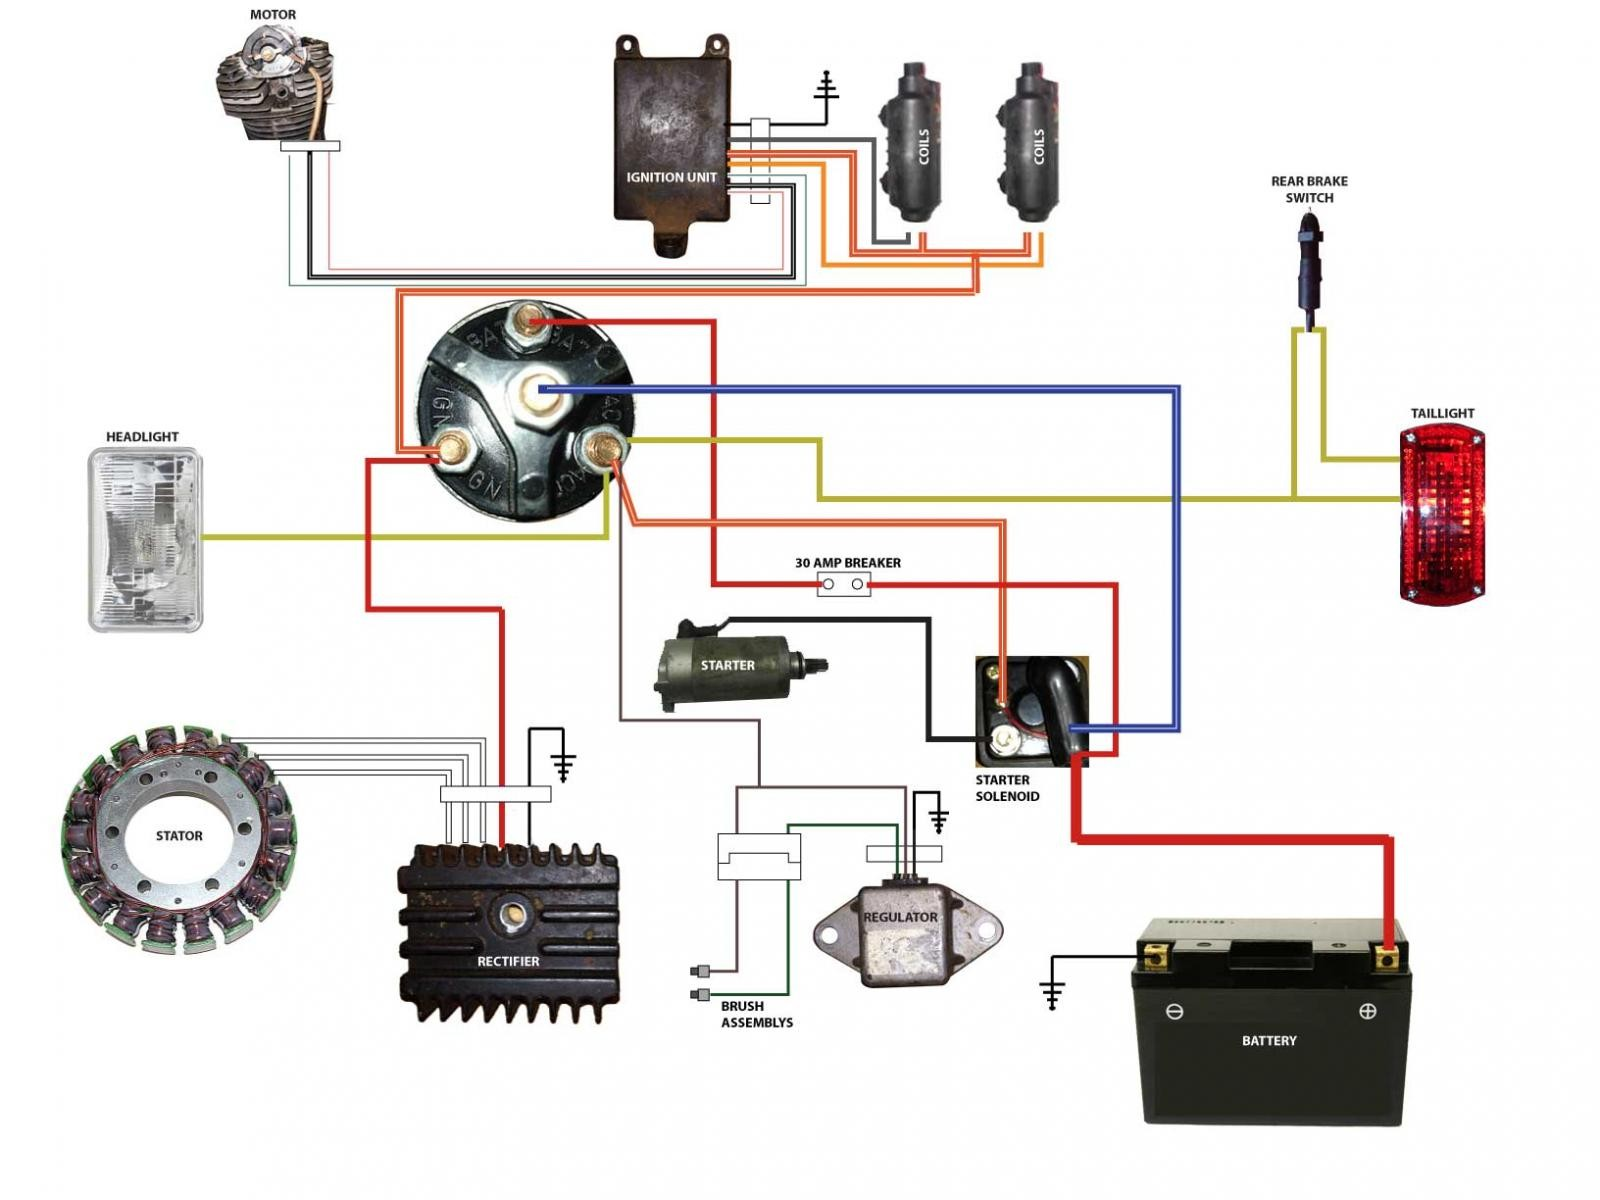 cb750 simple wiring diagram what does nca mean on a honda bobber best site harness